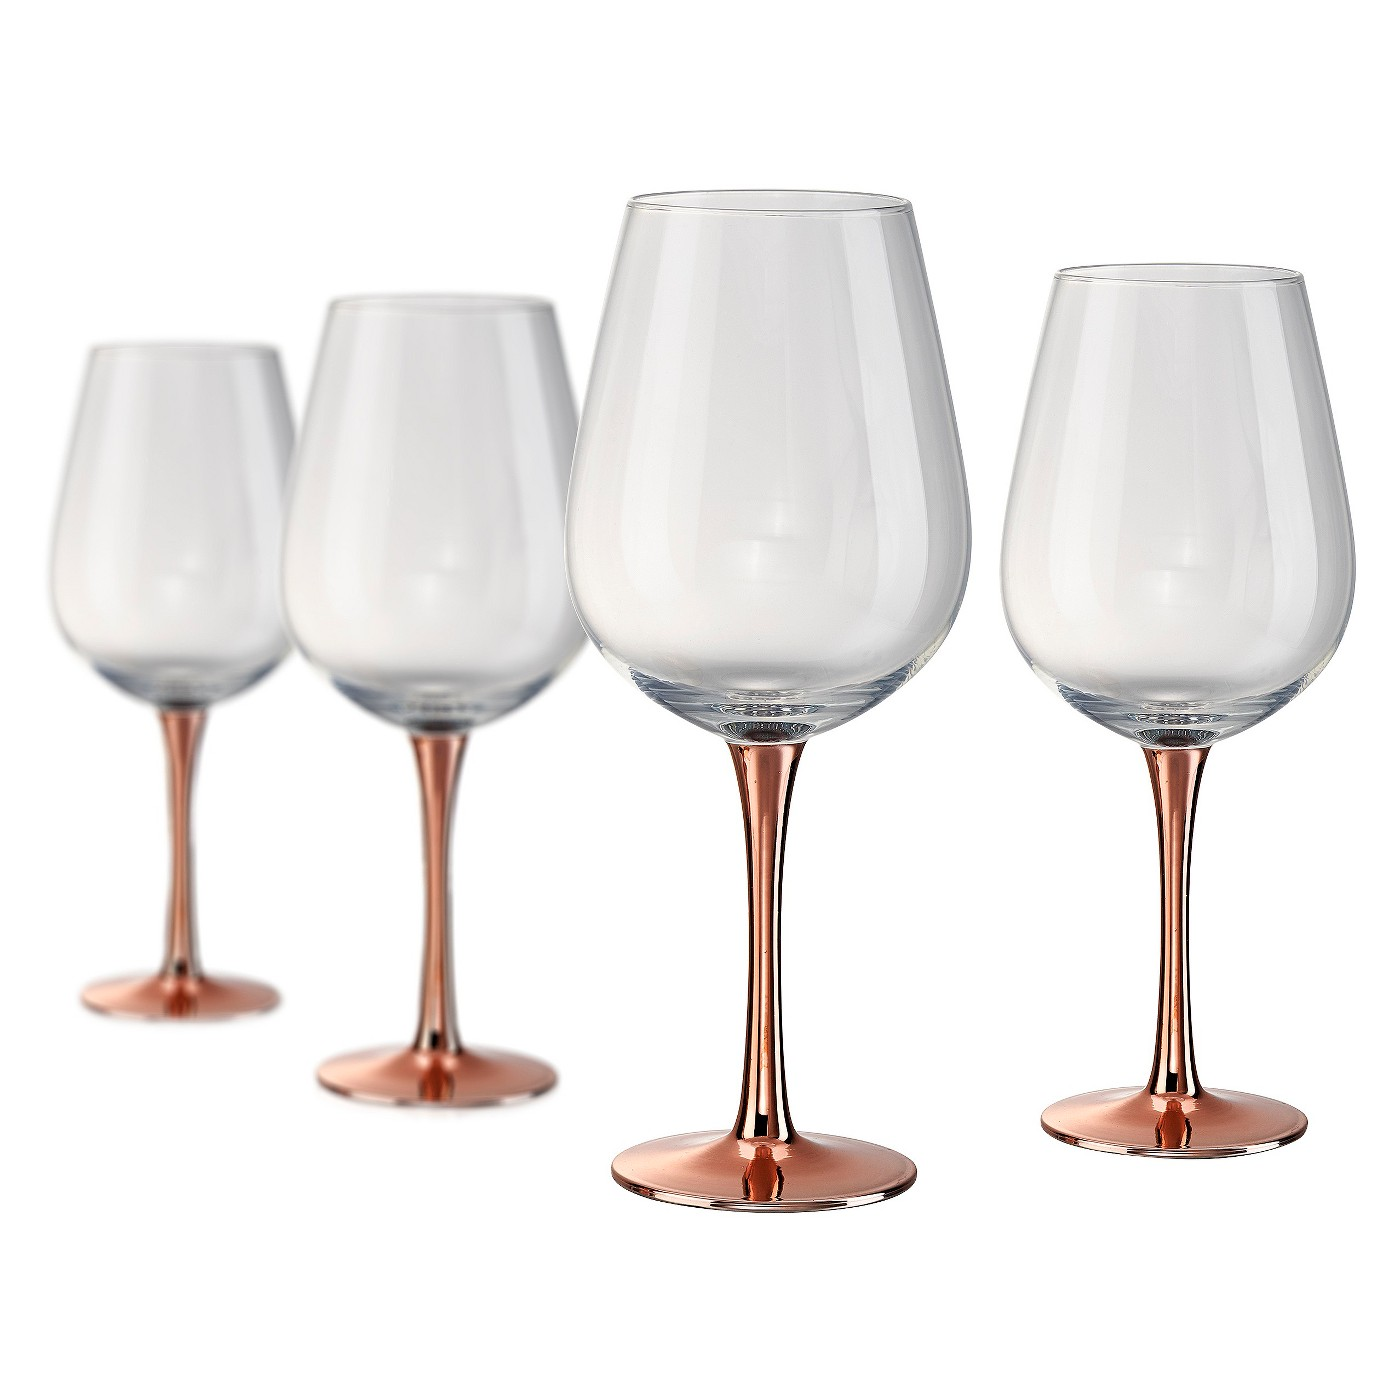 Artland Coppertino 22oz 4pk Red Wine Goblets Copper - image 1 of 1